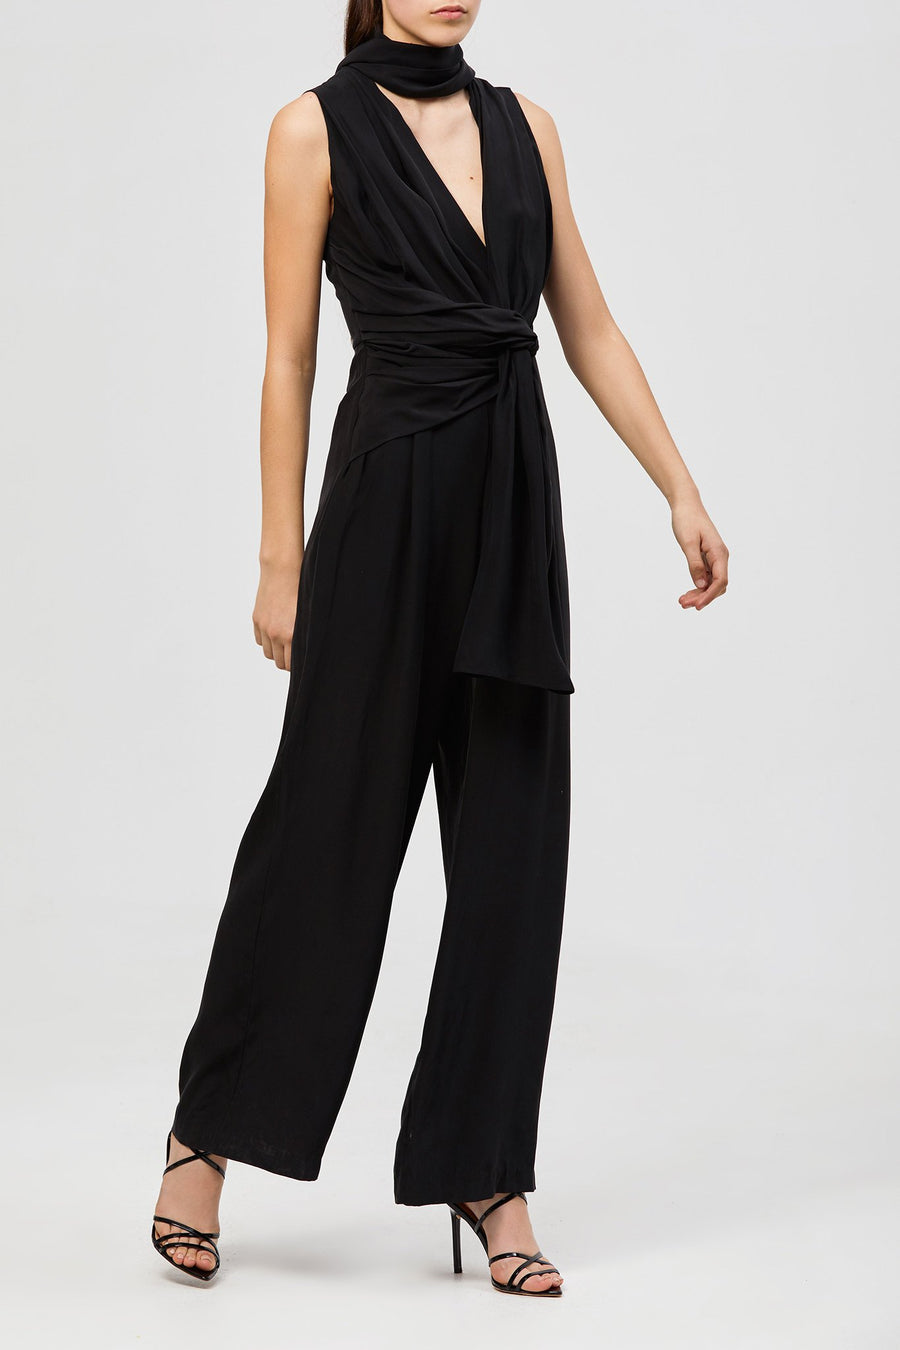 Acler Alma Jumpsuit